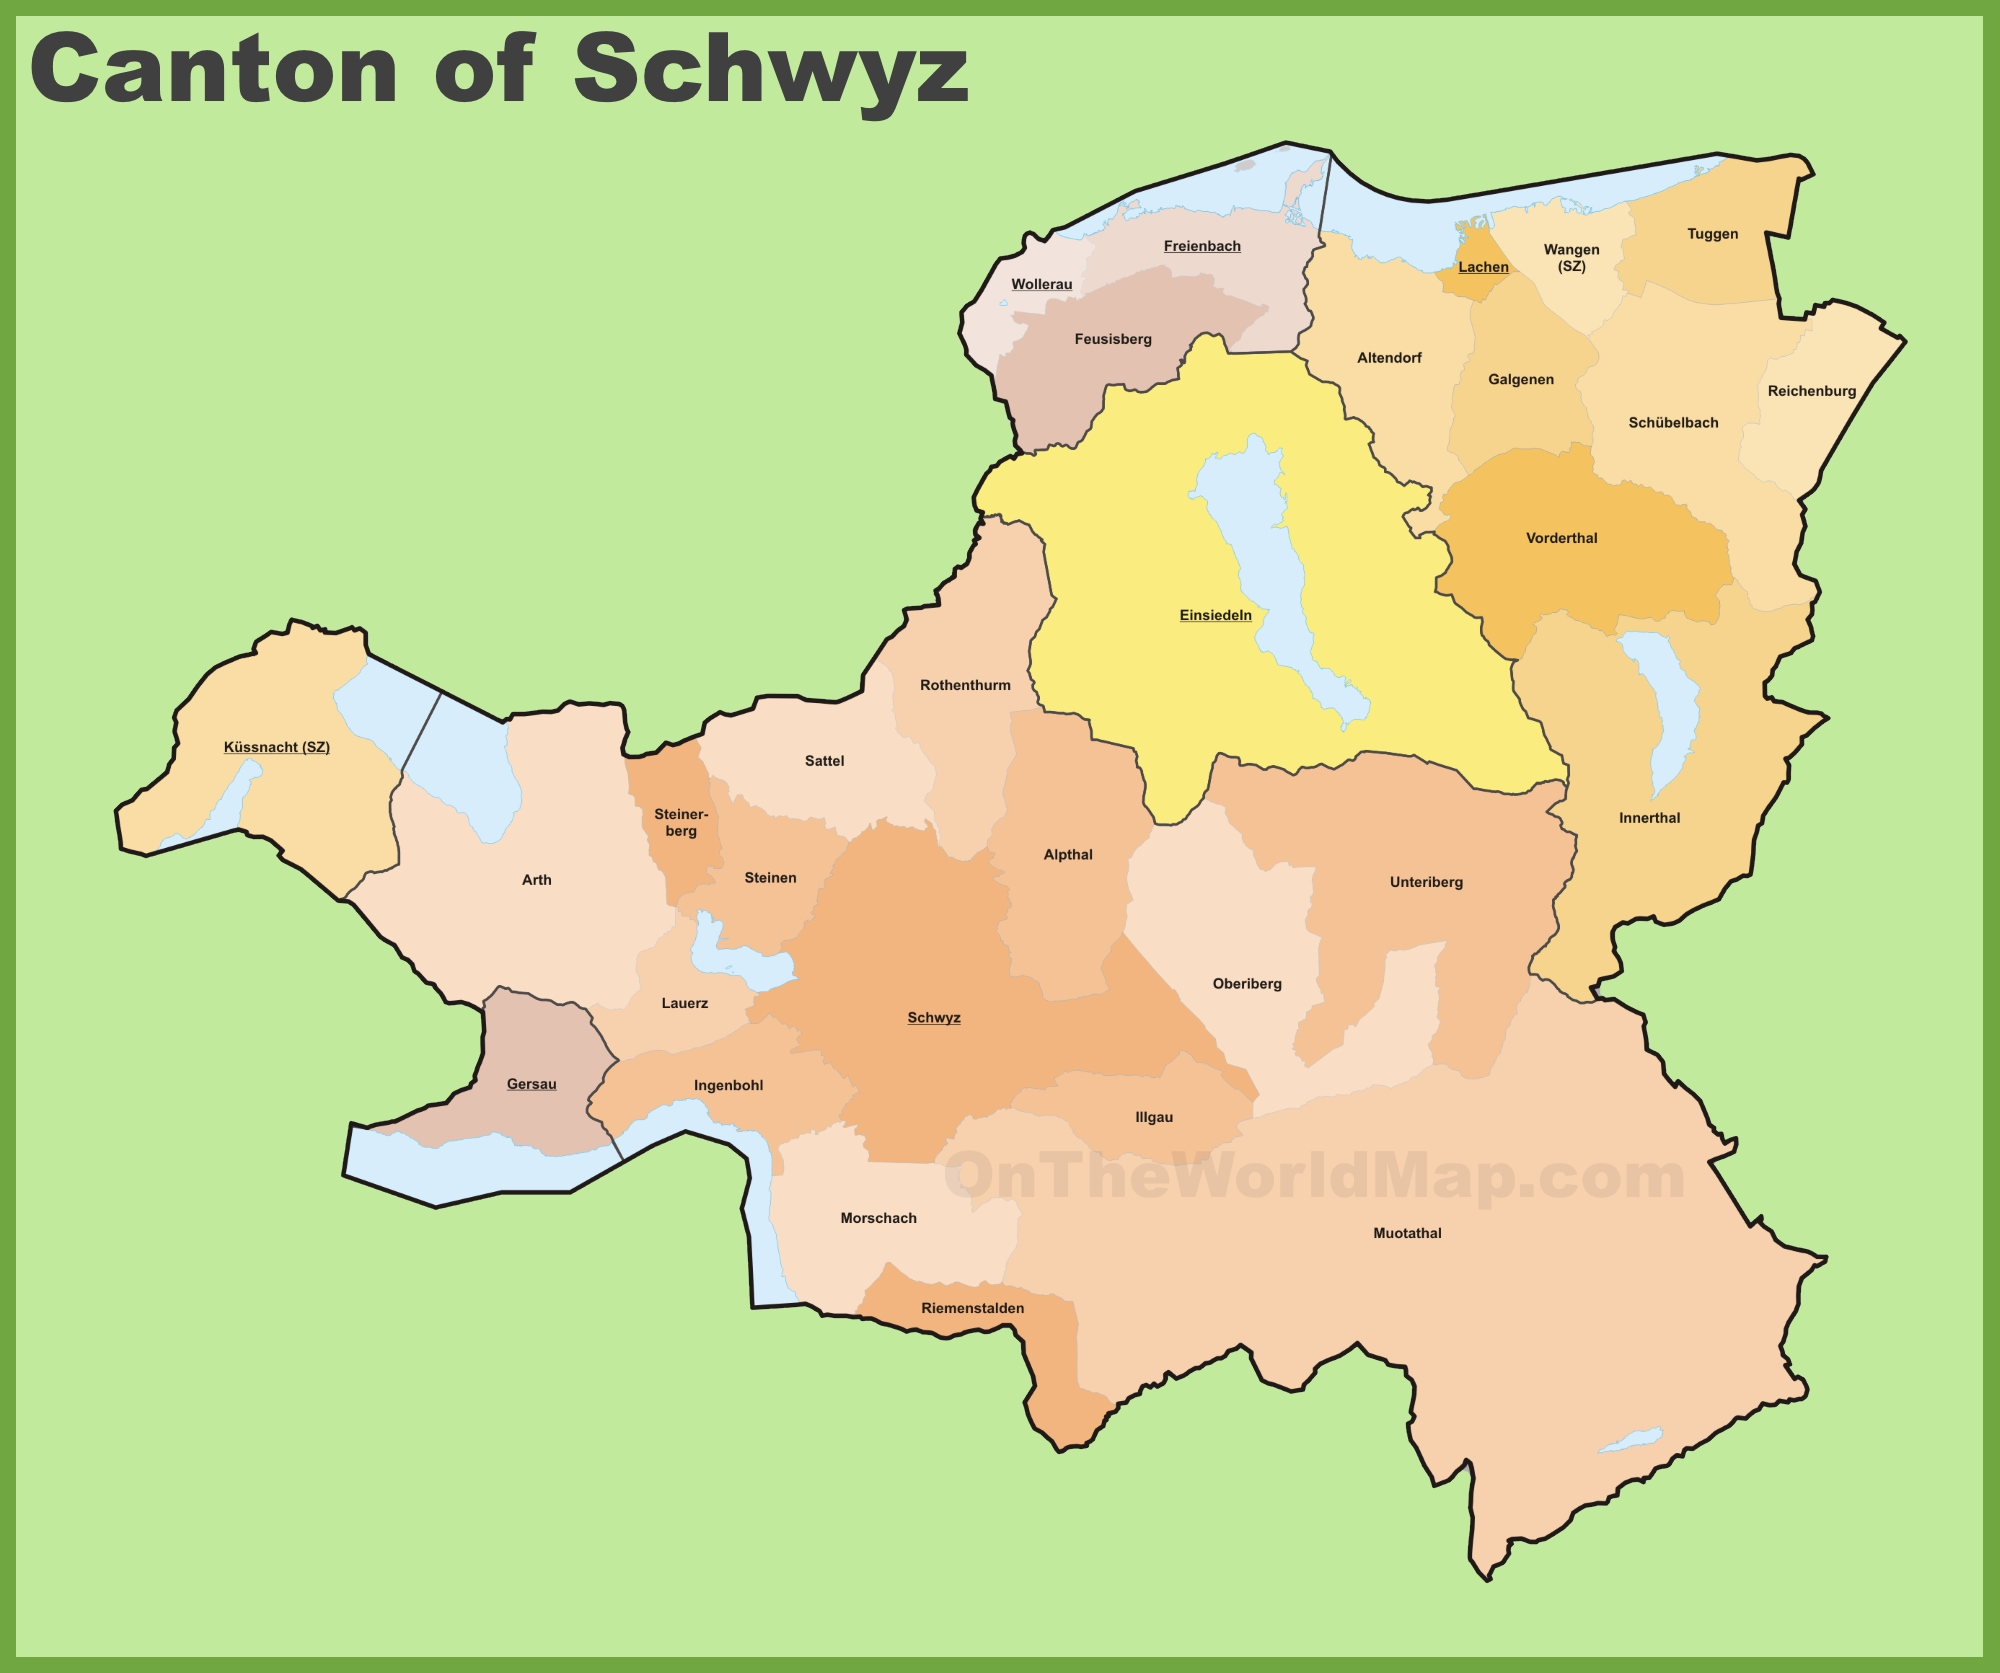 Canton of Schwyz municipality map